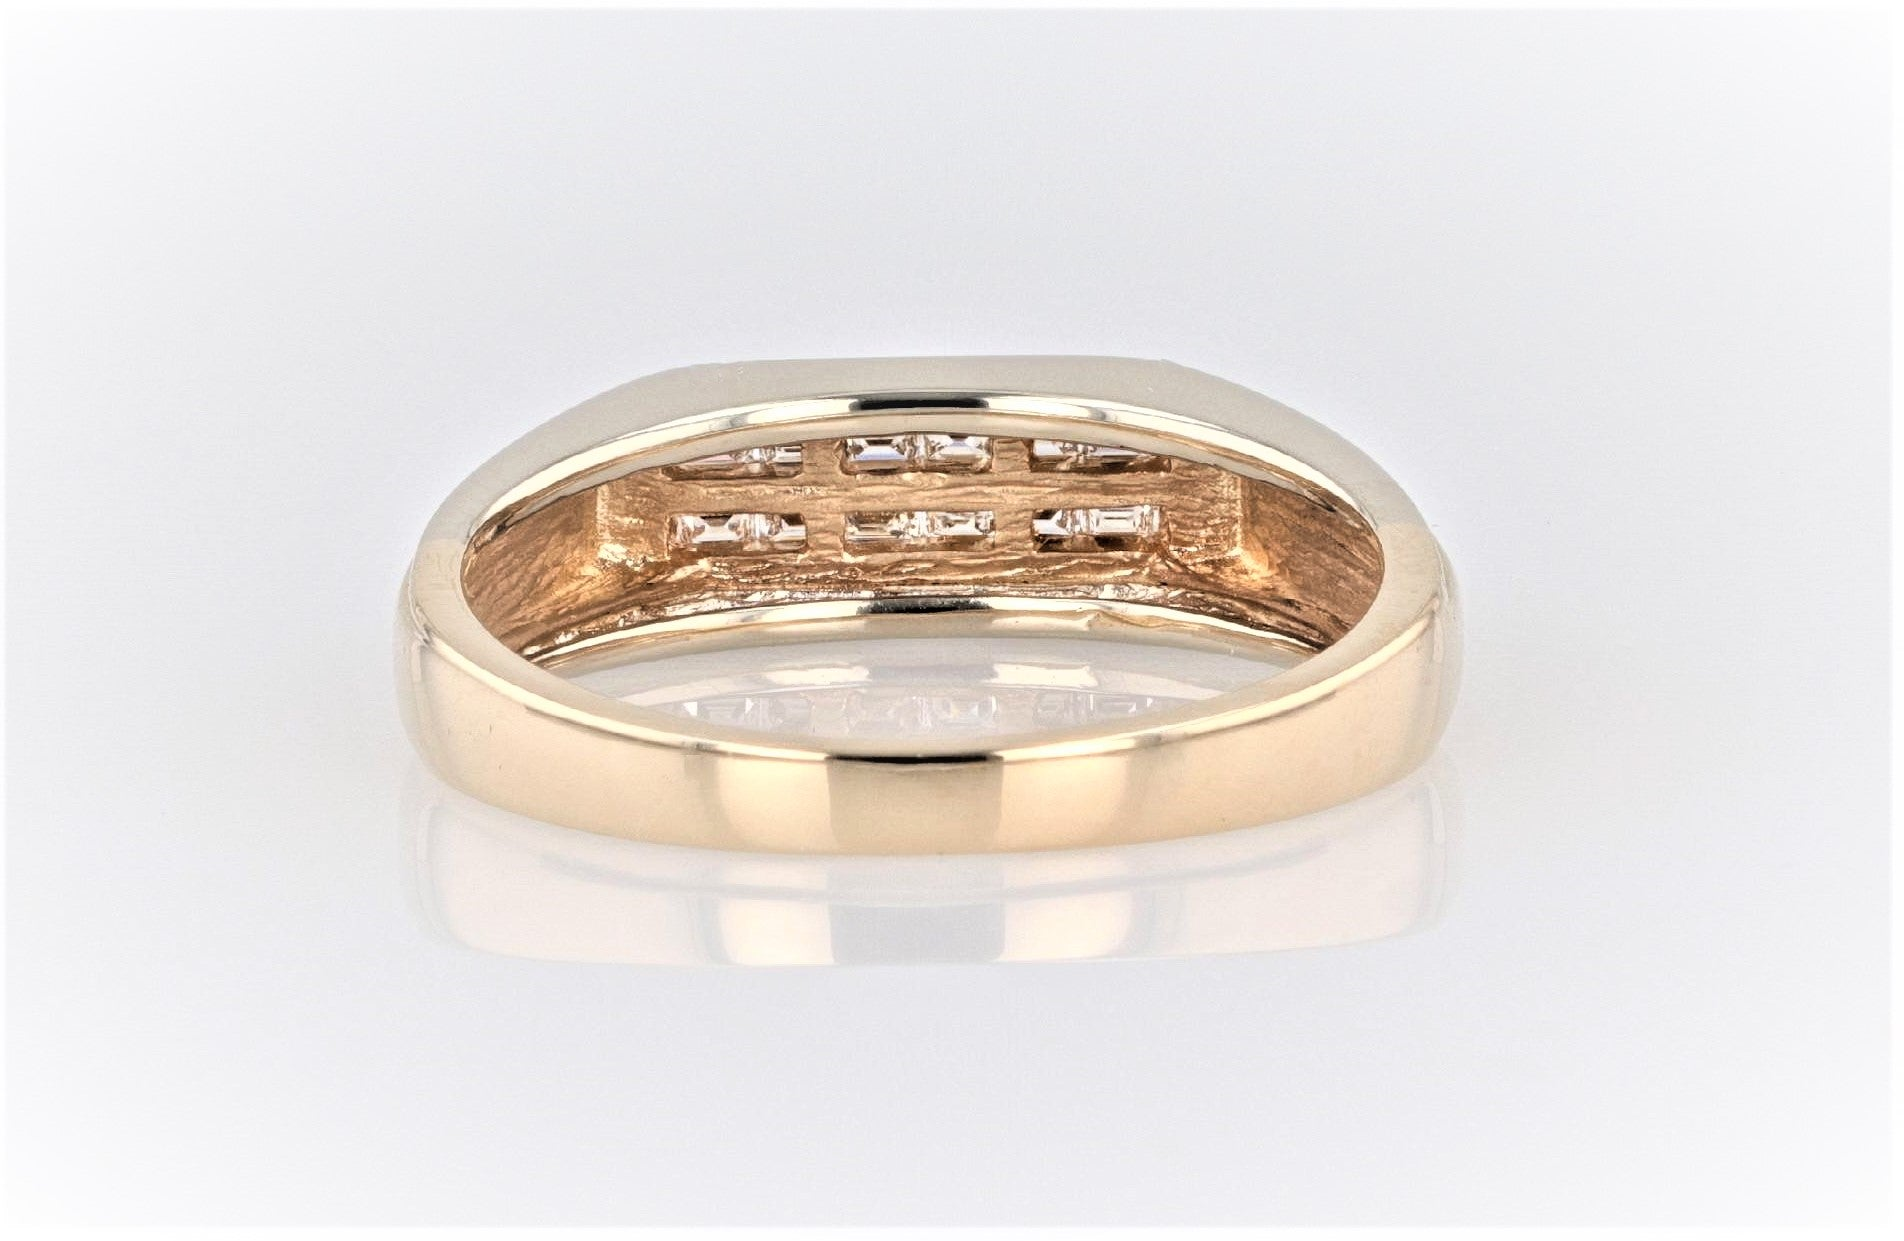 10K Men's Yellow Gold (Stamped) Shank Dress Ring